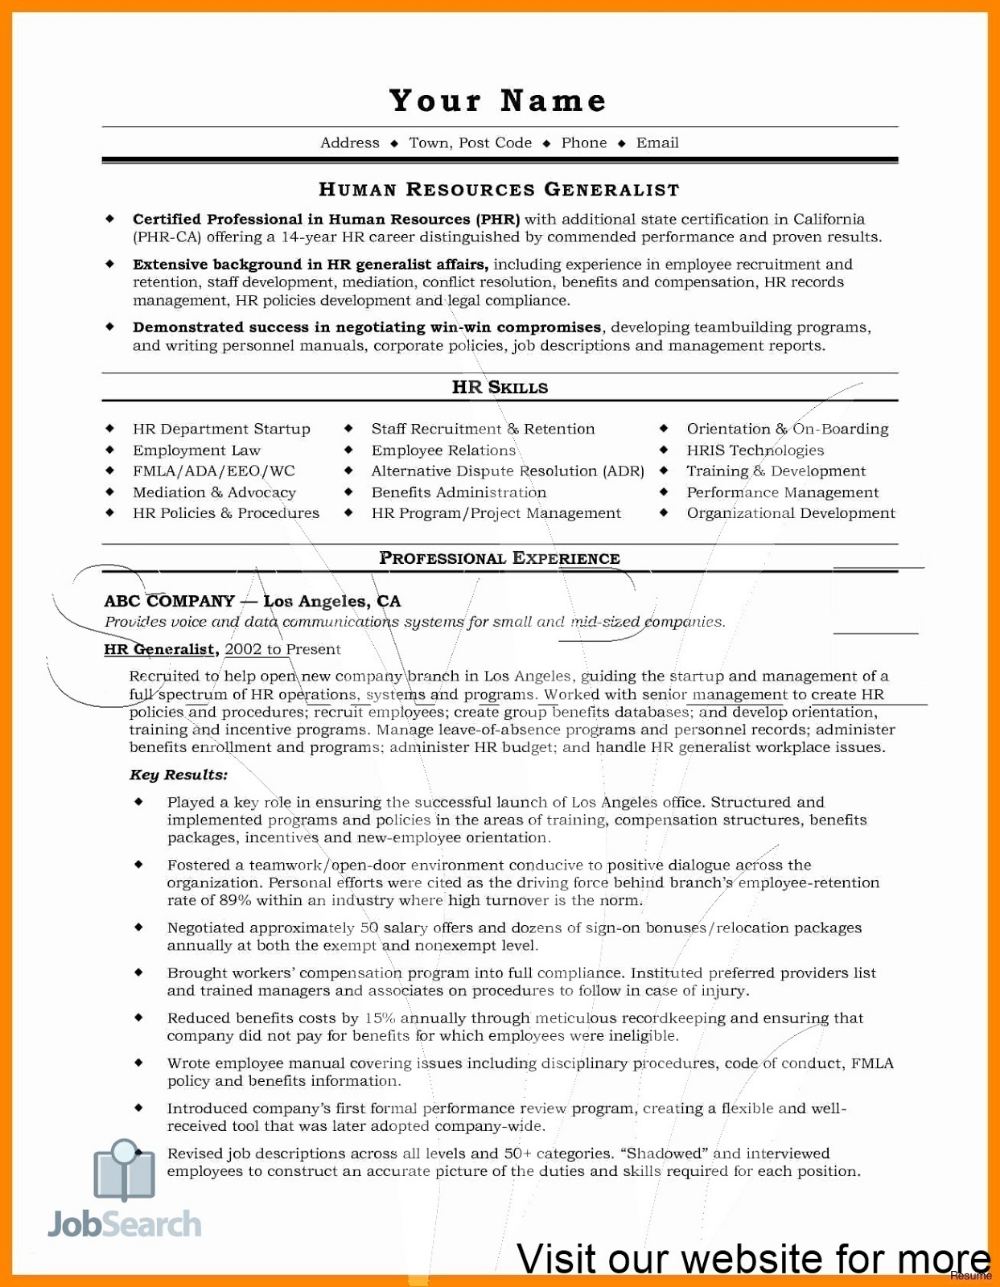 Making Your First Resume 2020 Making Your First Resume High School Making Your First R In 2020 Free Cv Template Word Resume Template Examples Business Resume Template